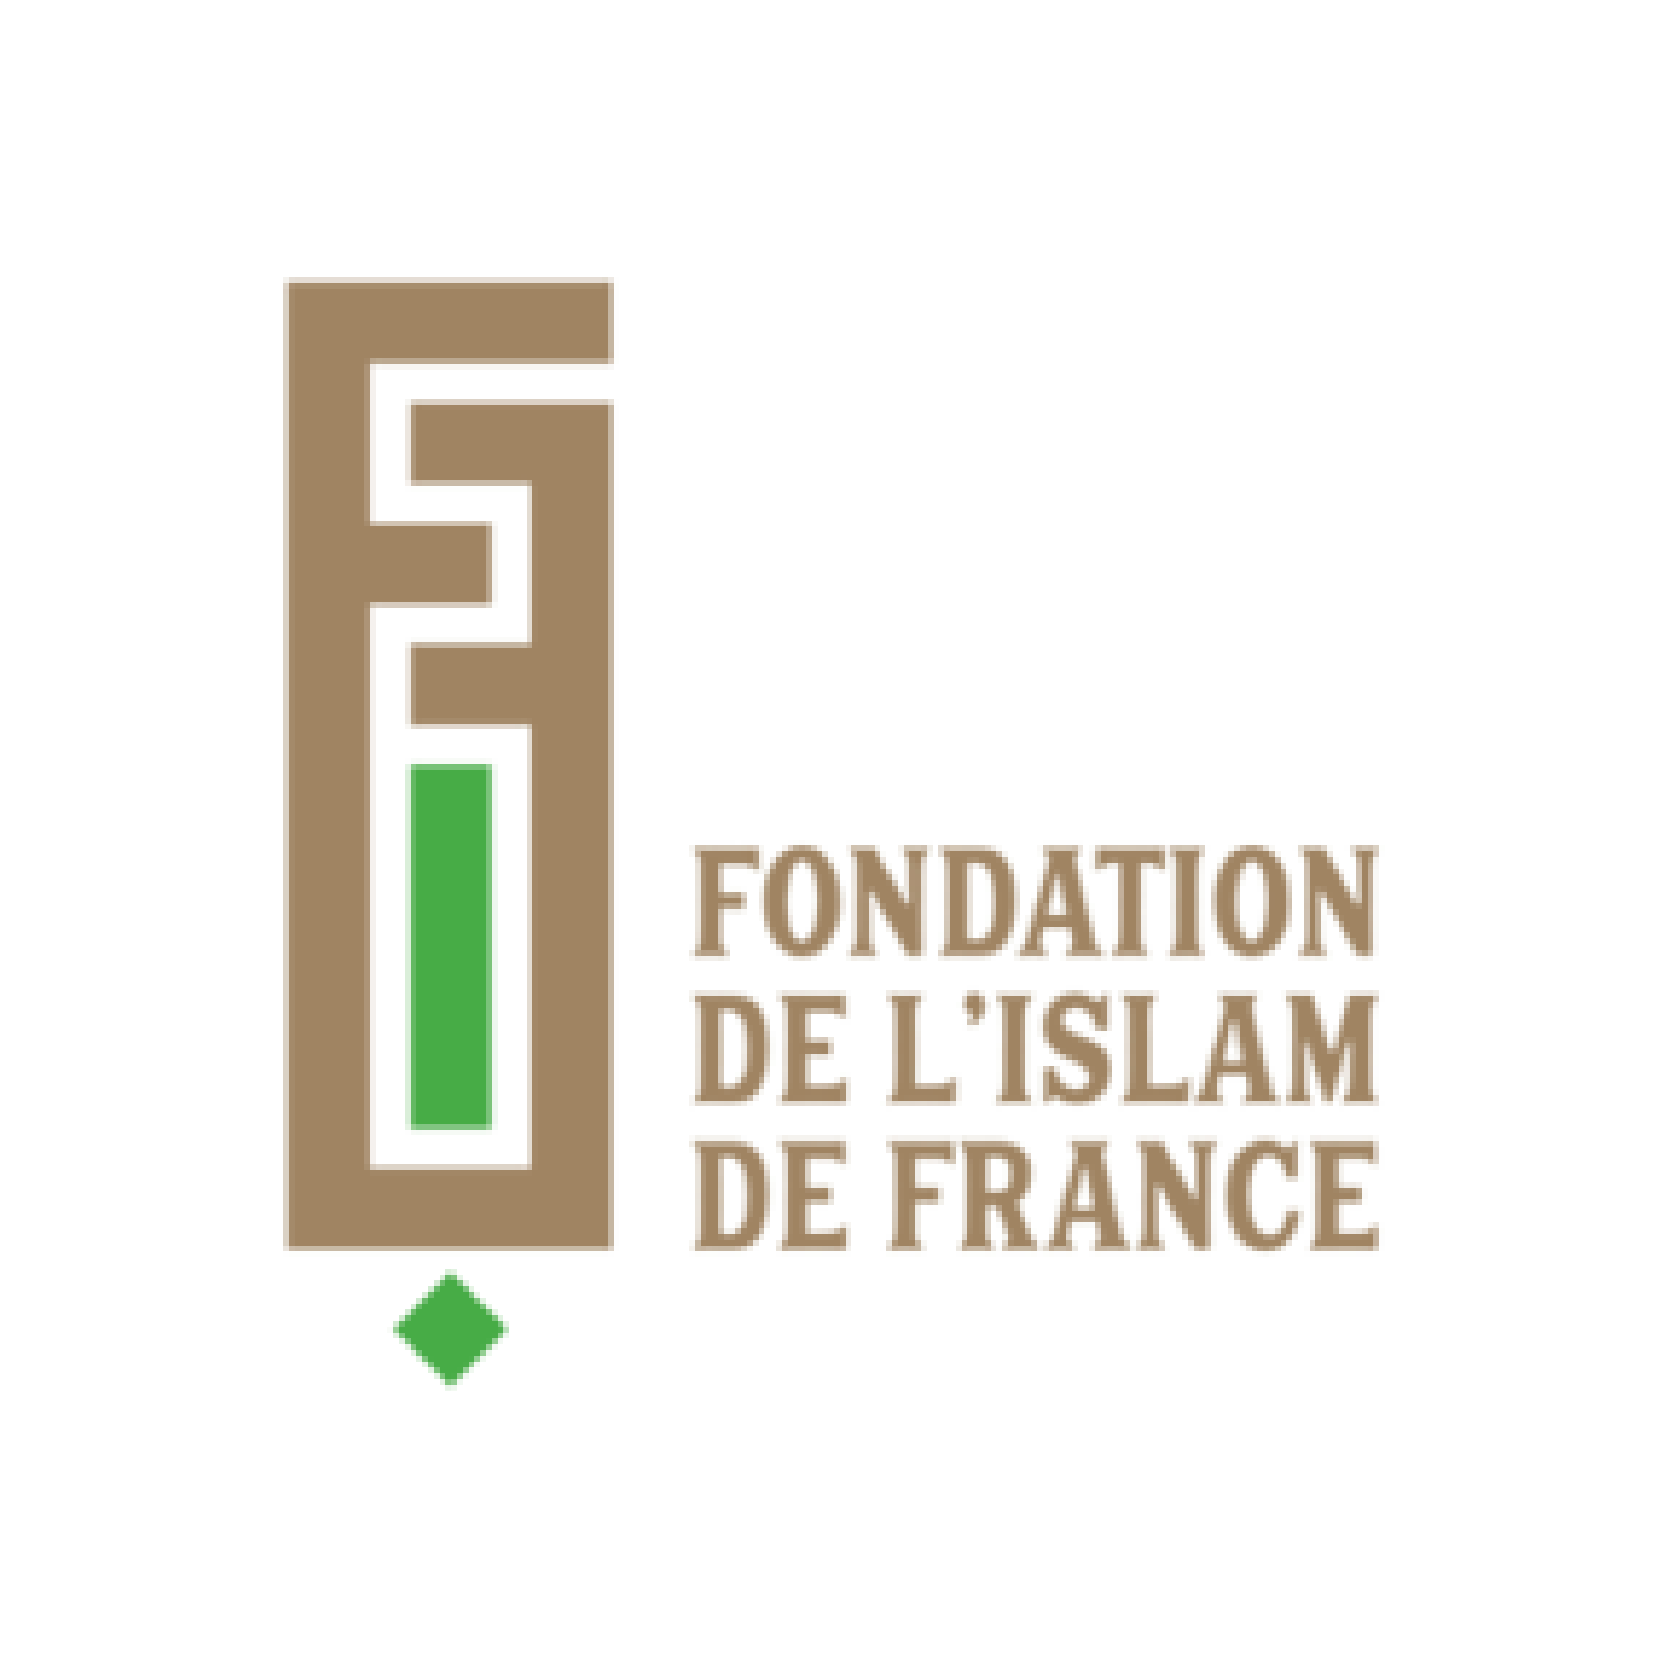 Fondation de l'Islam de France